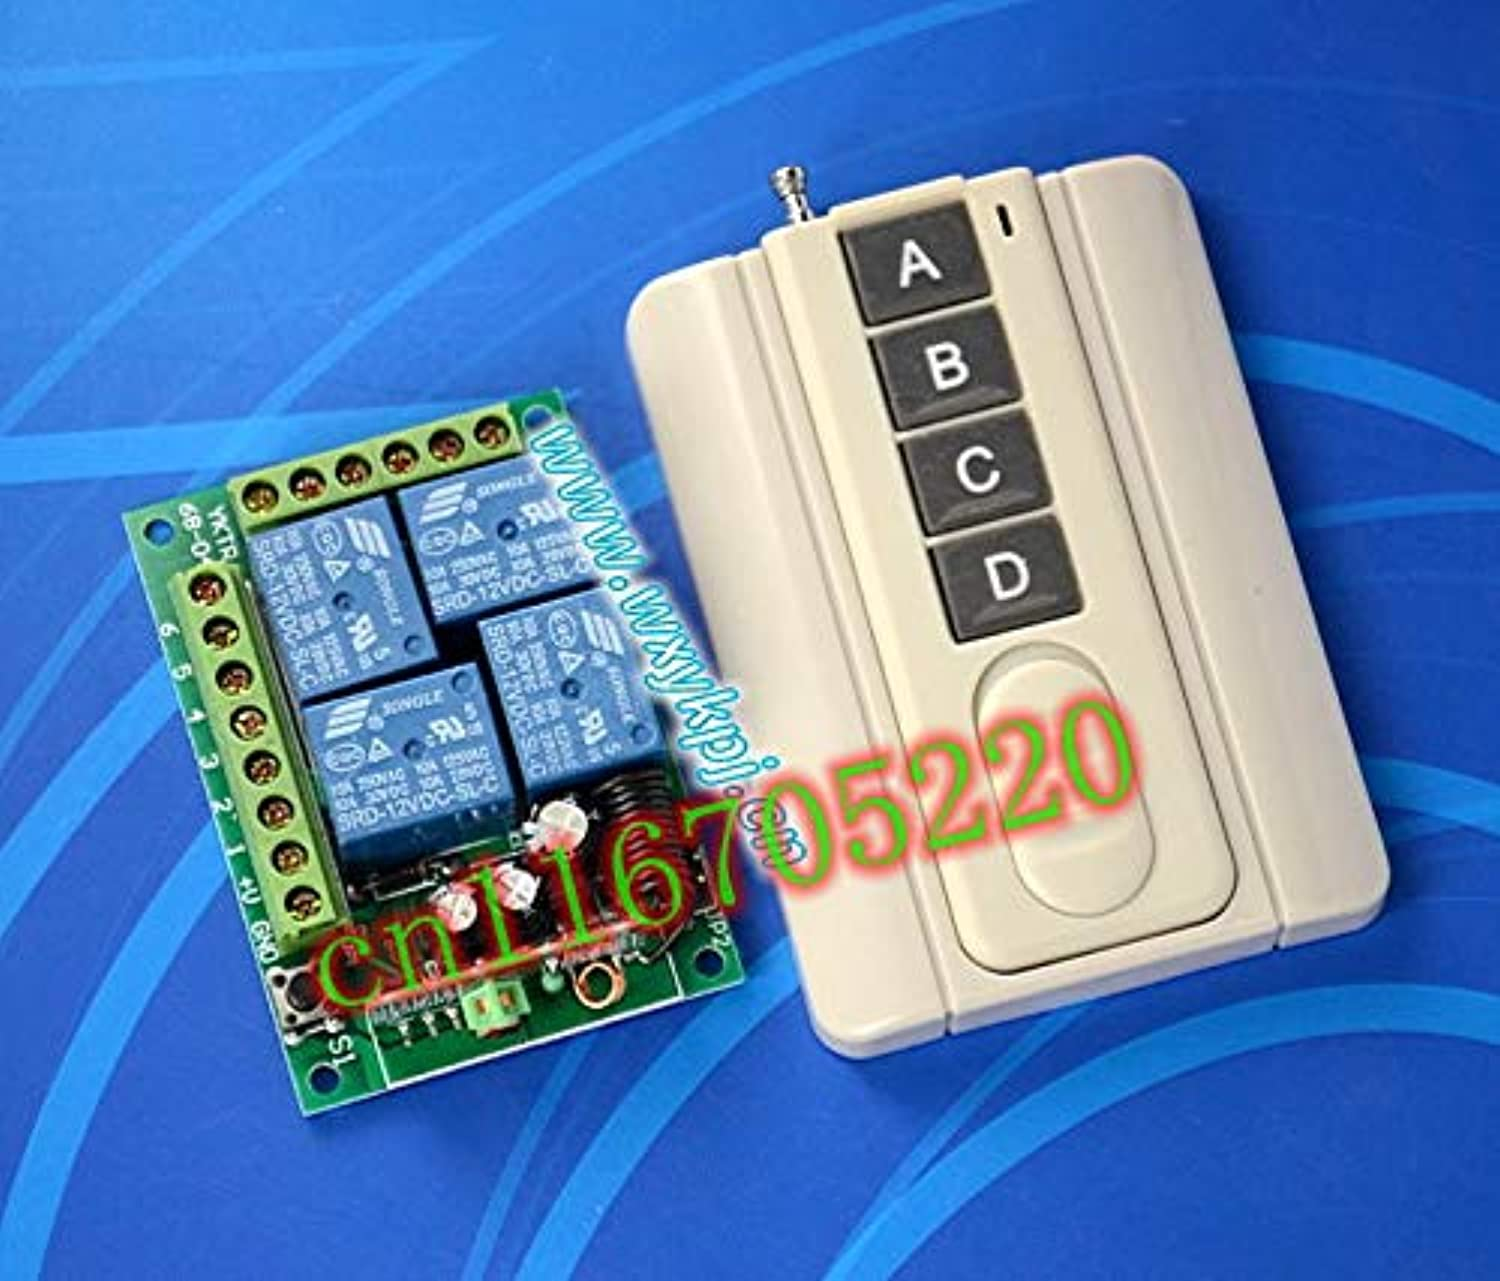 Power Remote Auto Door Opener 12V 4 CH Wireless Remote Control Switch System 12v Transmitter & Receiver 315 433MHZ.